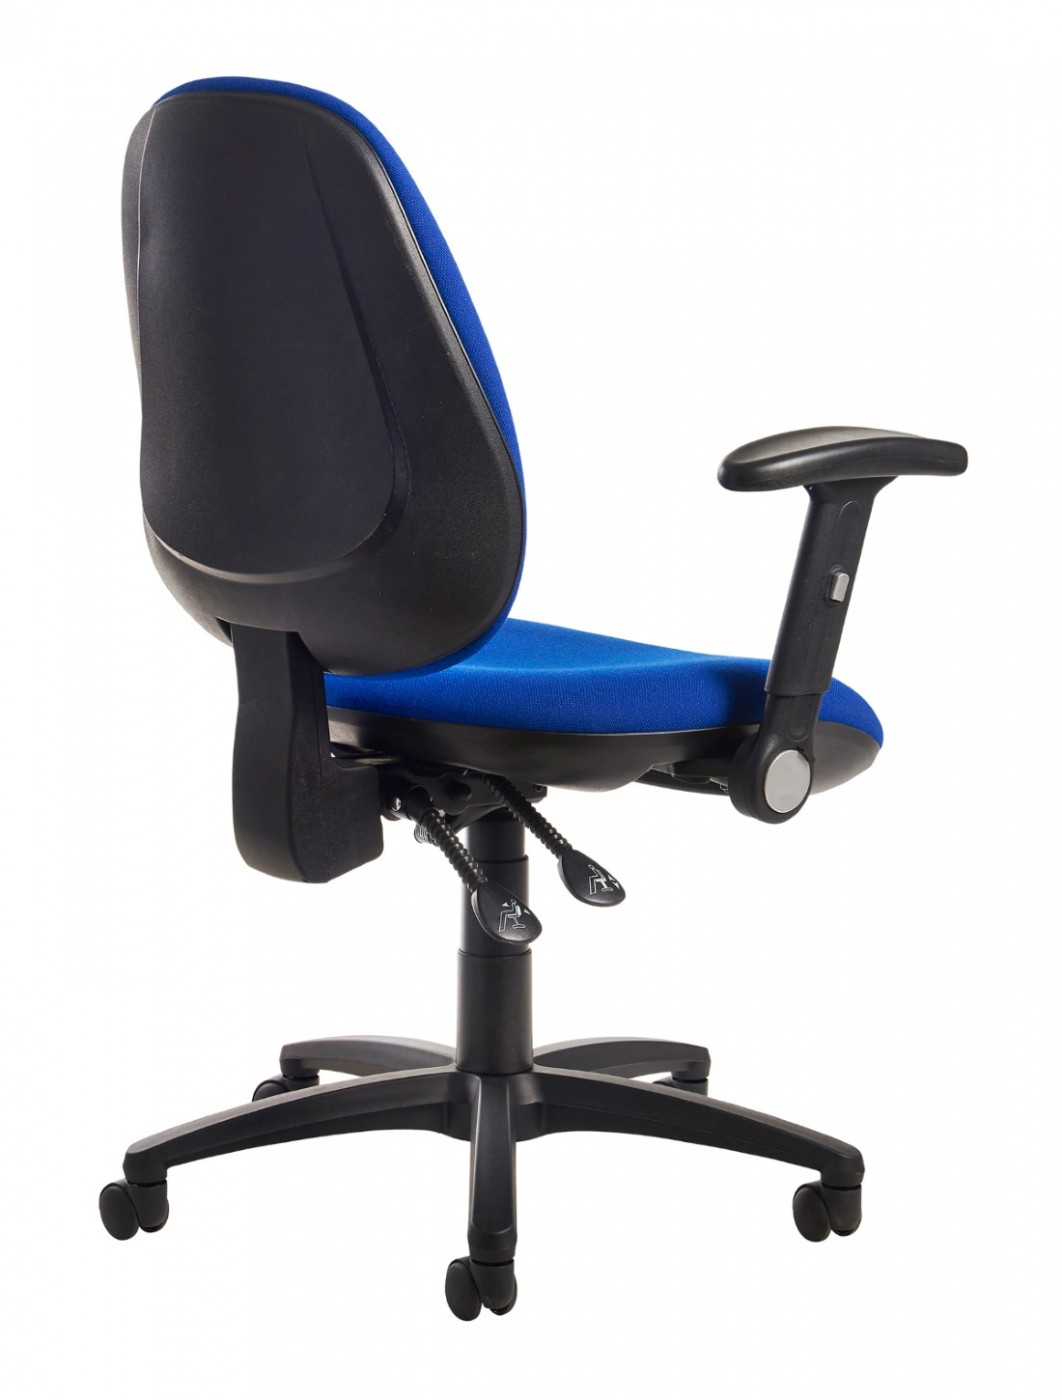 Picture of: Office Chair Jota High Back Operators Chair Jh46 000 By Dams 121 Office Furniture